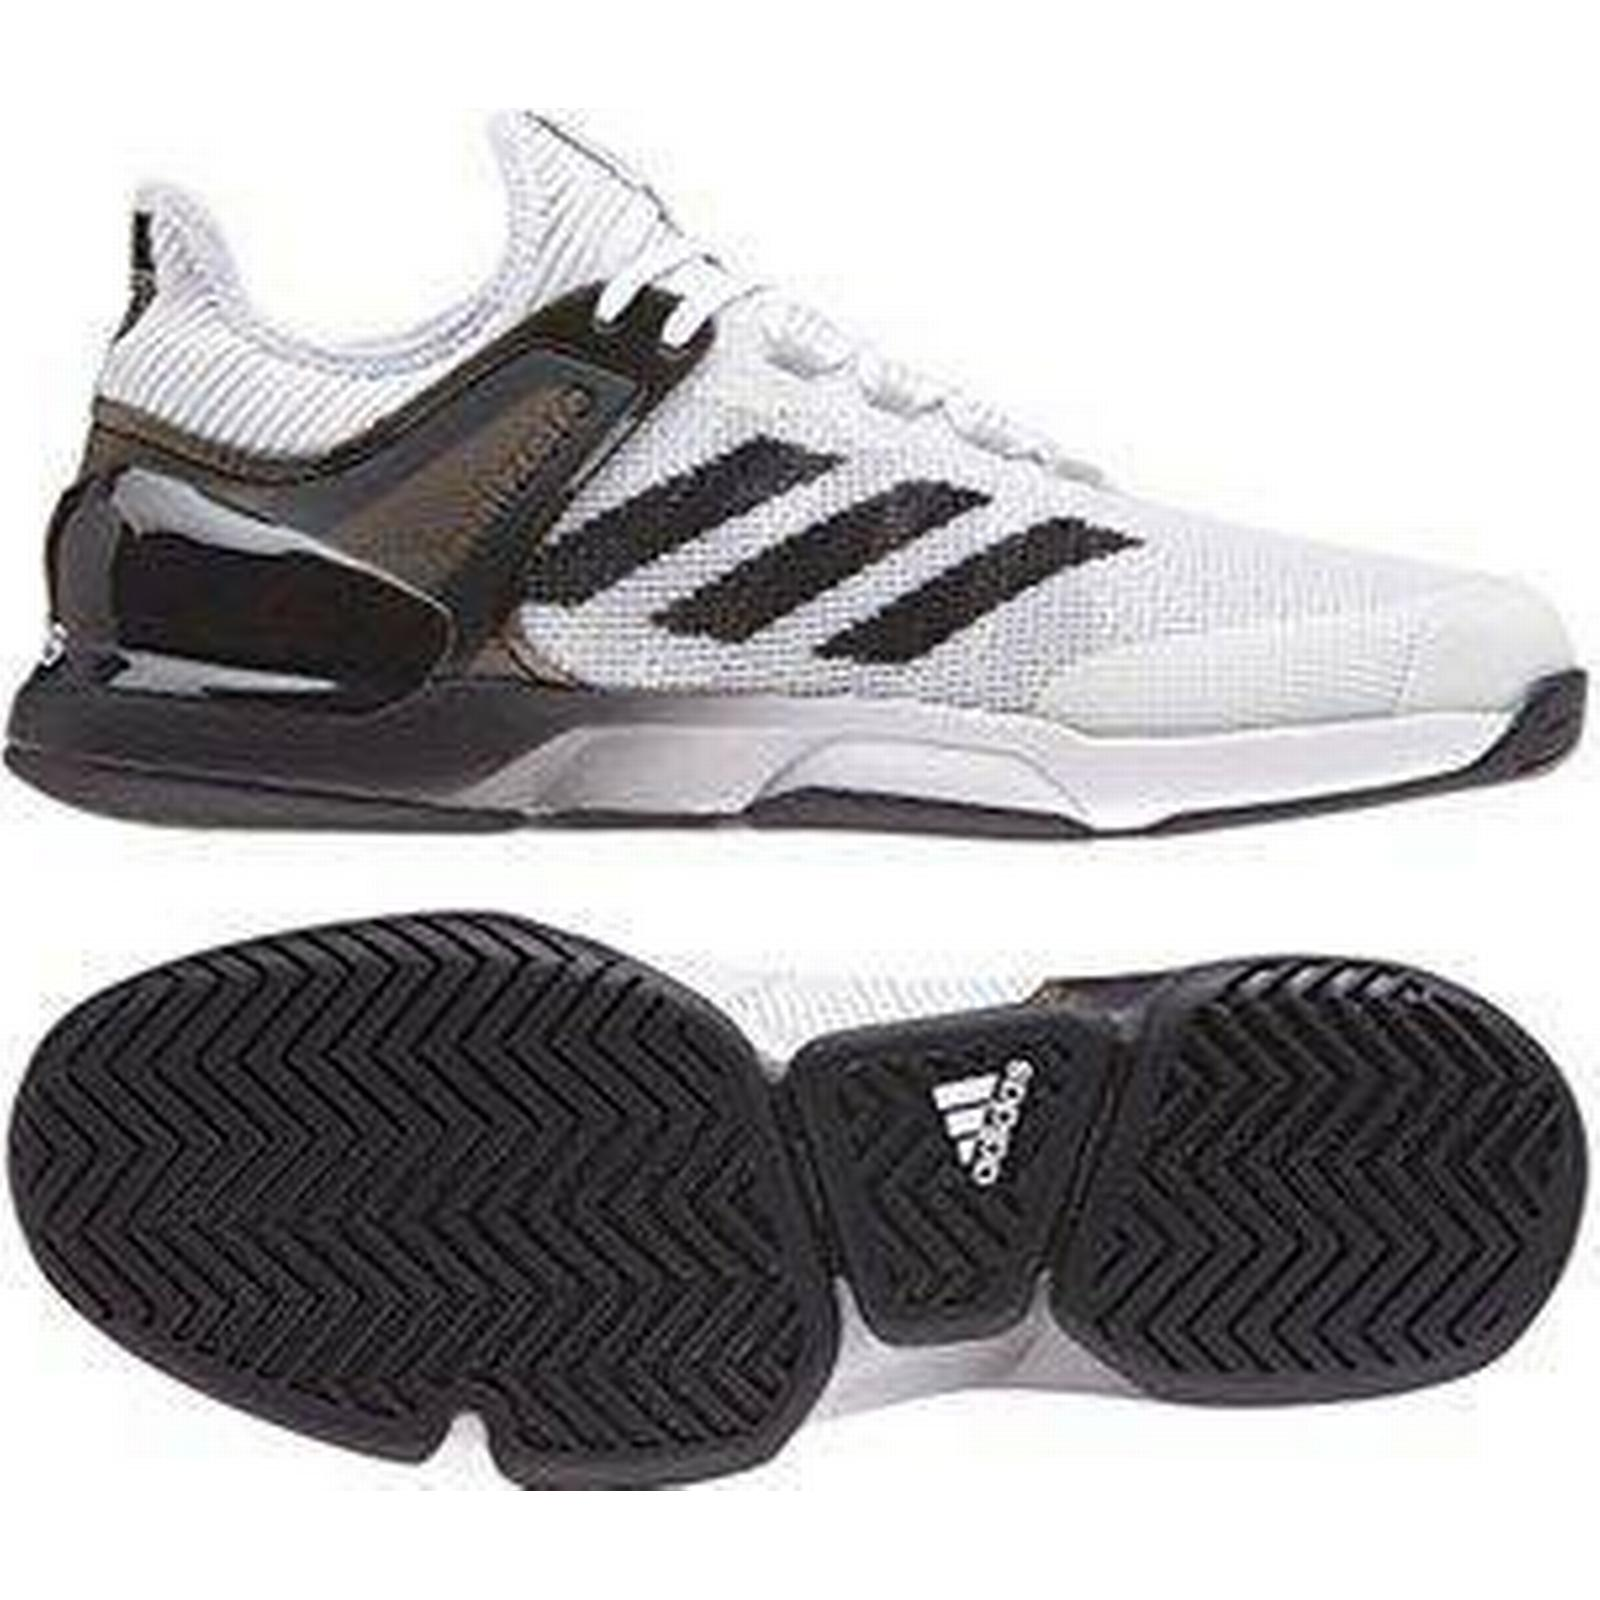 Adidas Adizero UK ubersonic 2.0 Black/White - UK Adizero 8.0 b98920